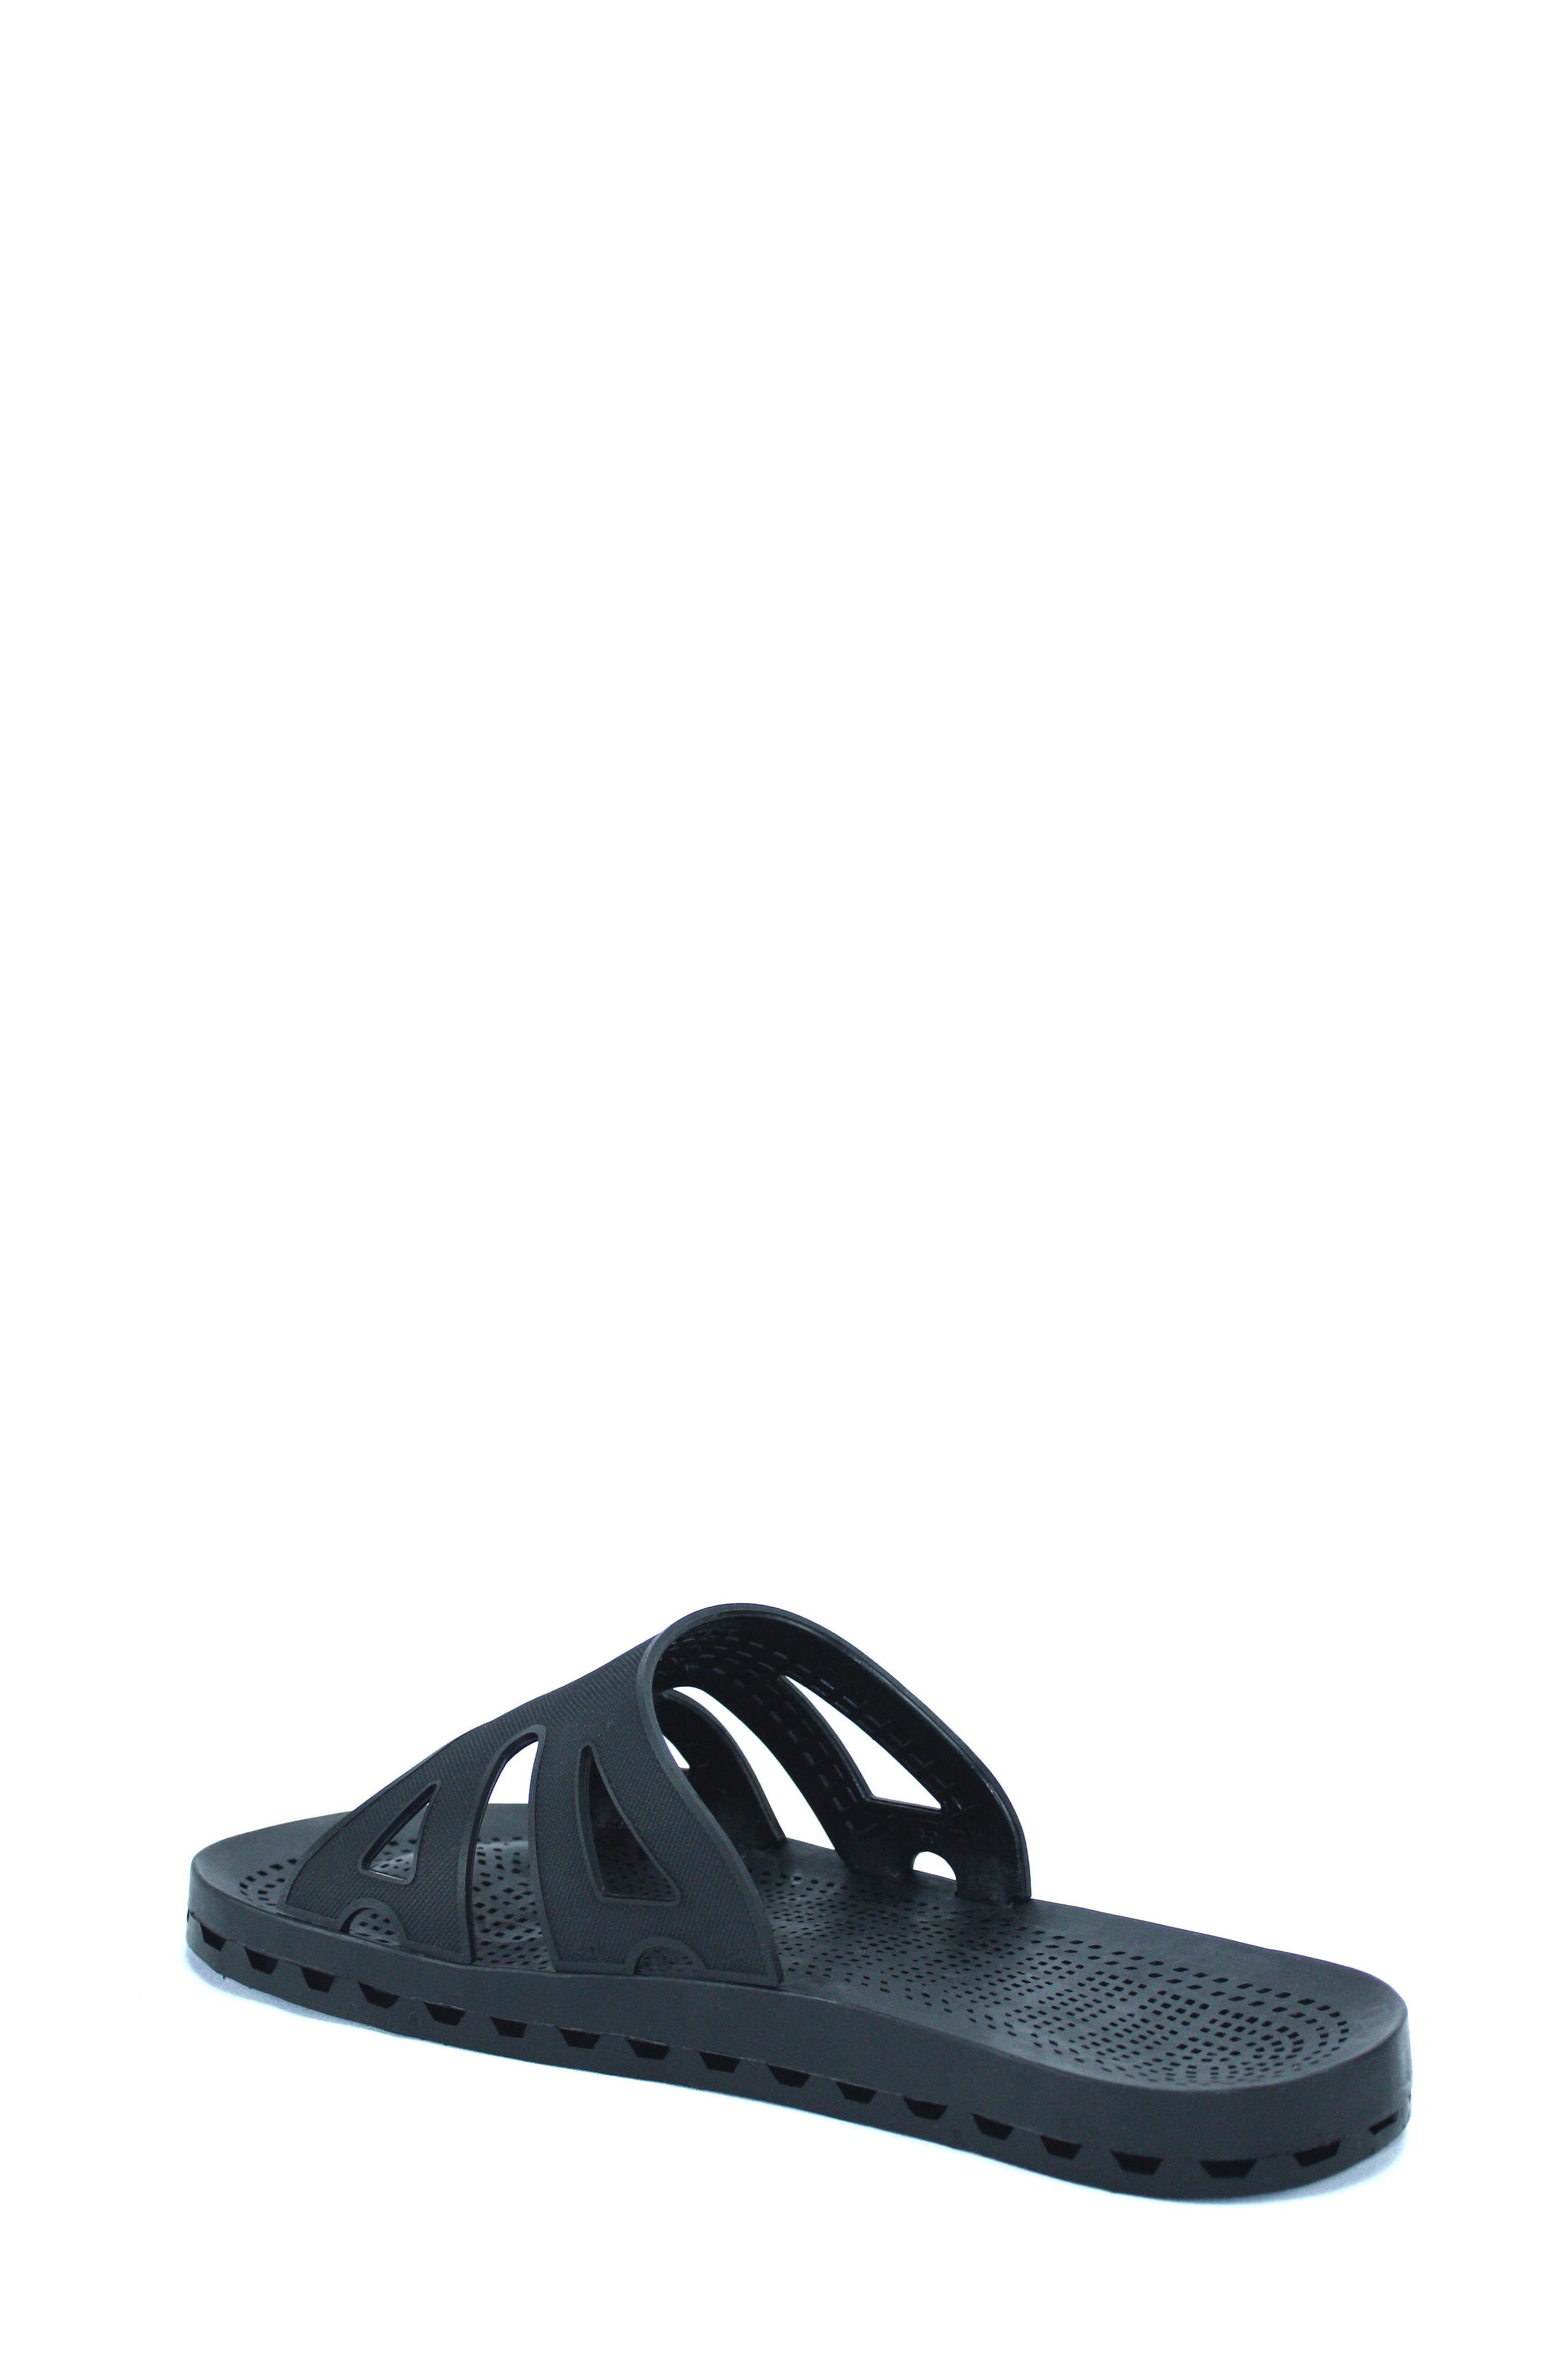 SENSI,                             Regatta Slide Sandal,                             Alternate thumbnail 2, color,                             001